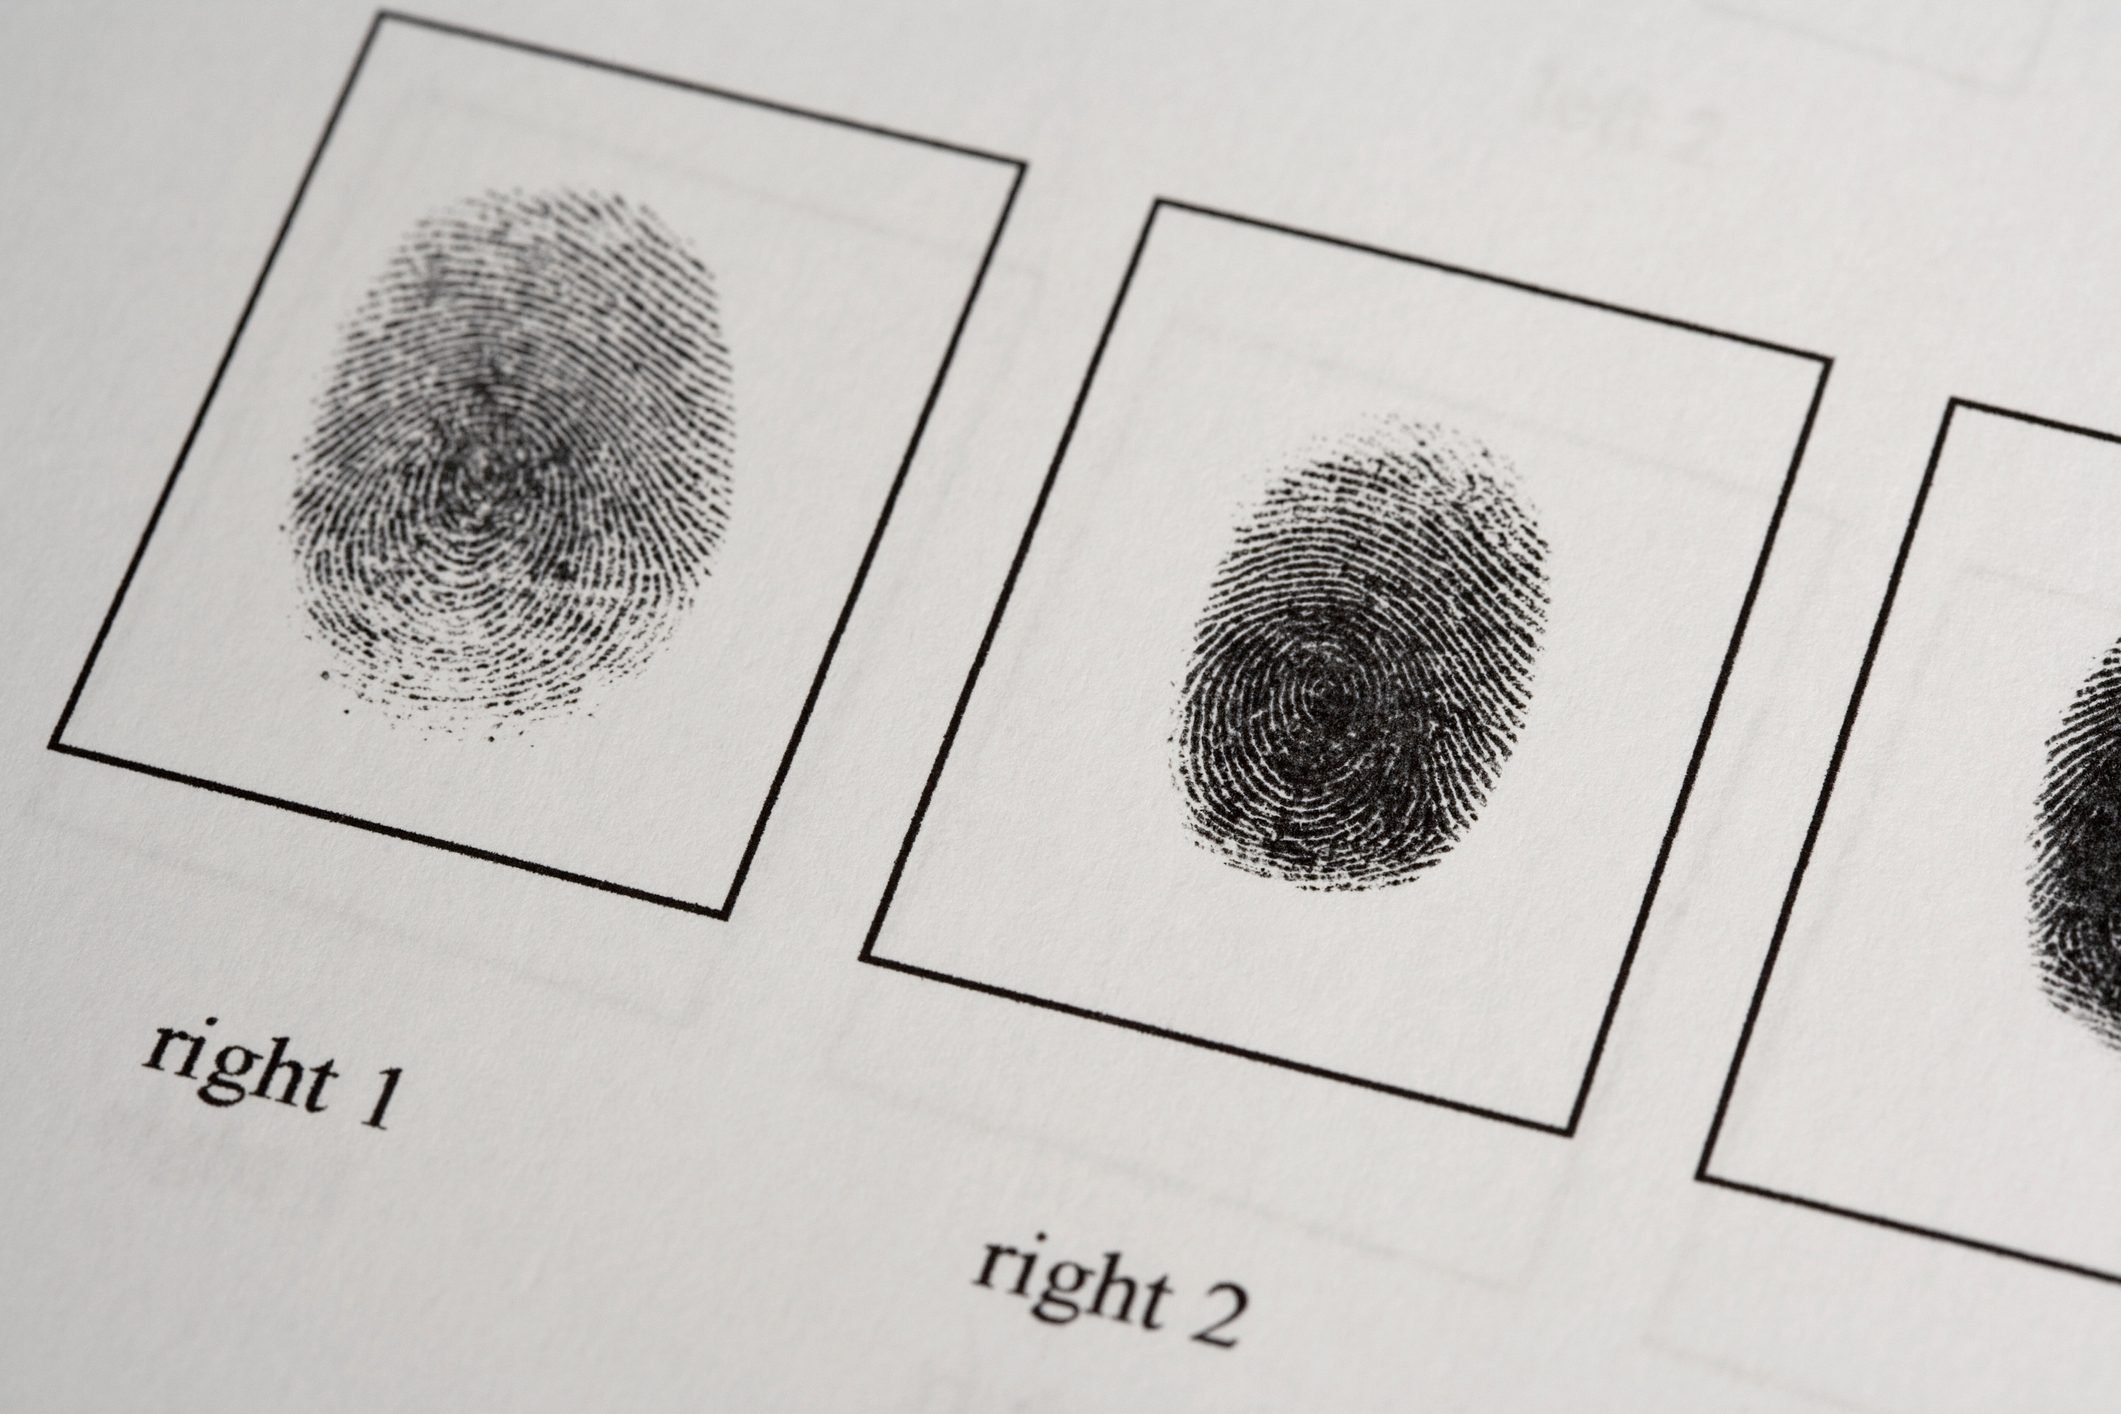 fingerprints on paper document